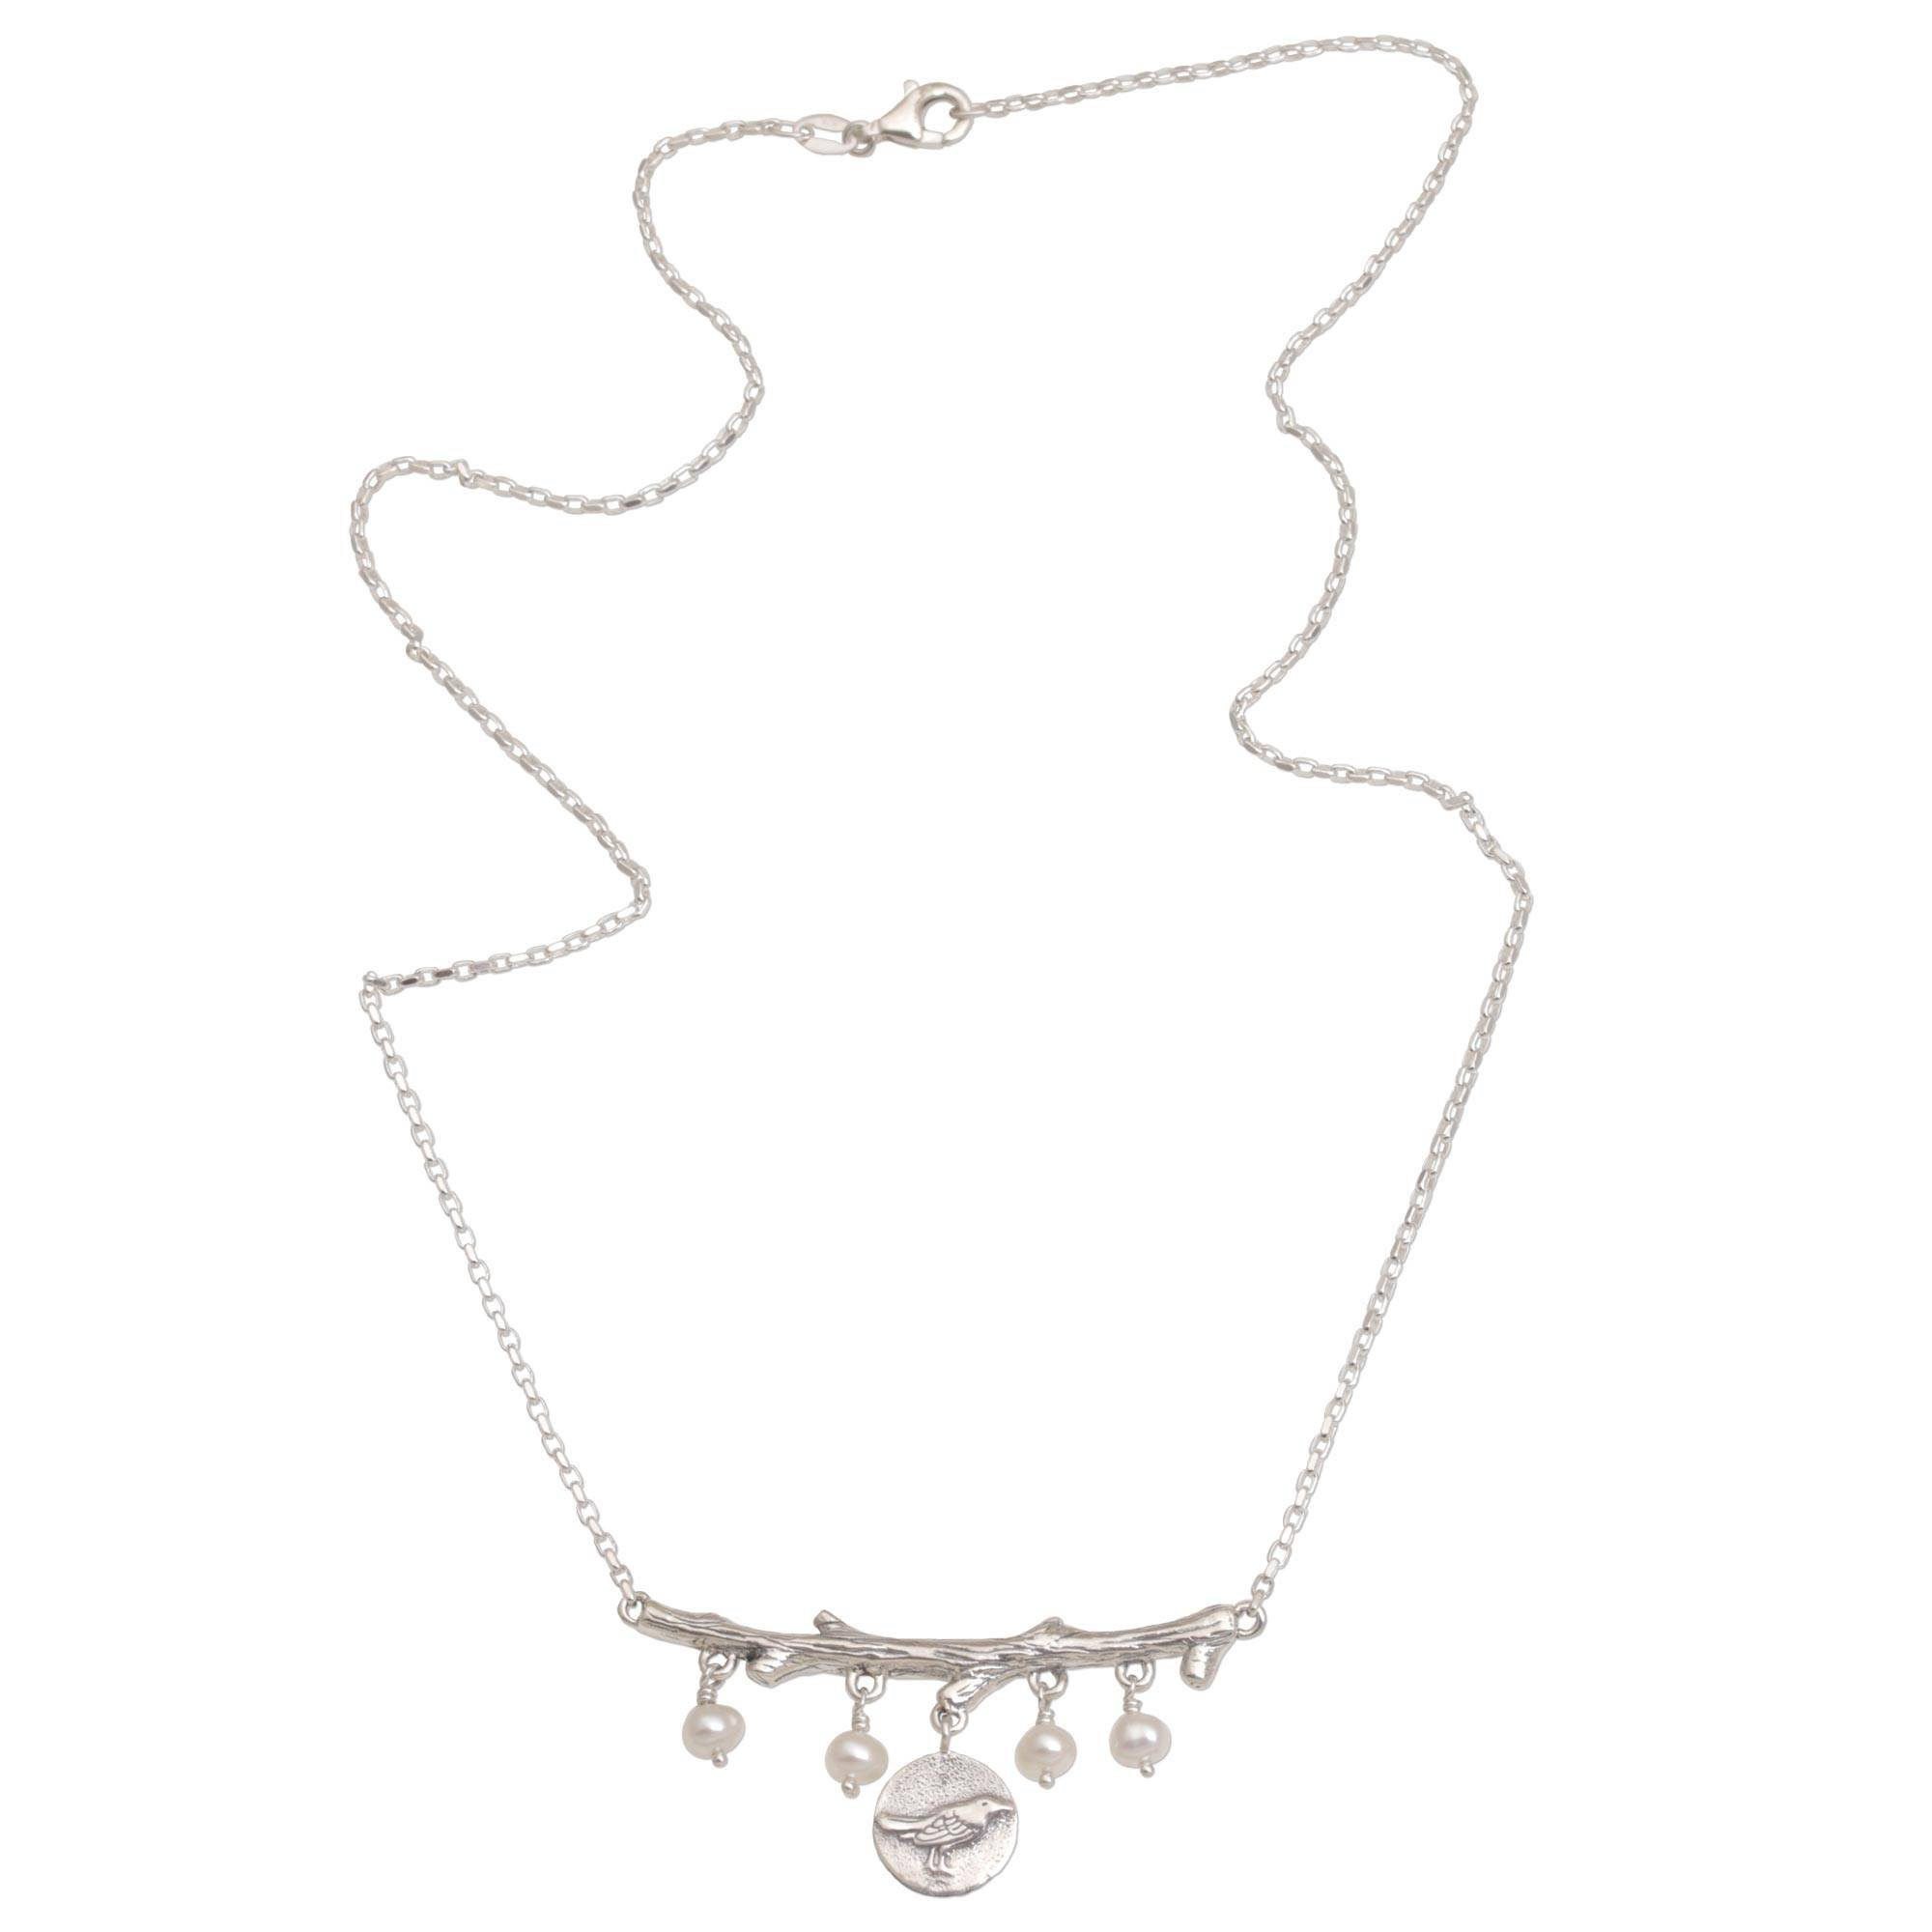 NOVICA Silver White Cultured Freshwater Pearl .925 Silver Necklace, 17.75'', 'Morning Chirp'